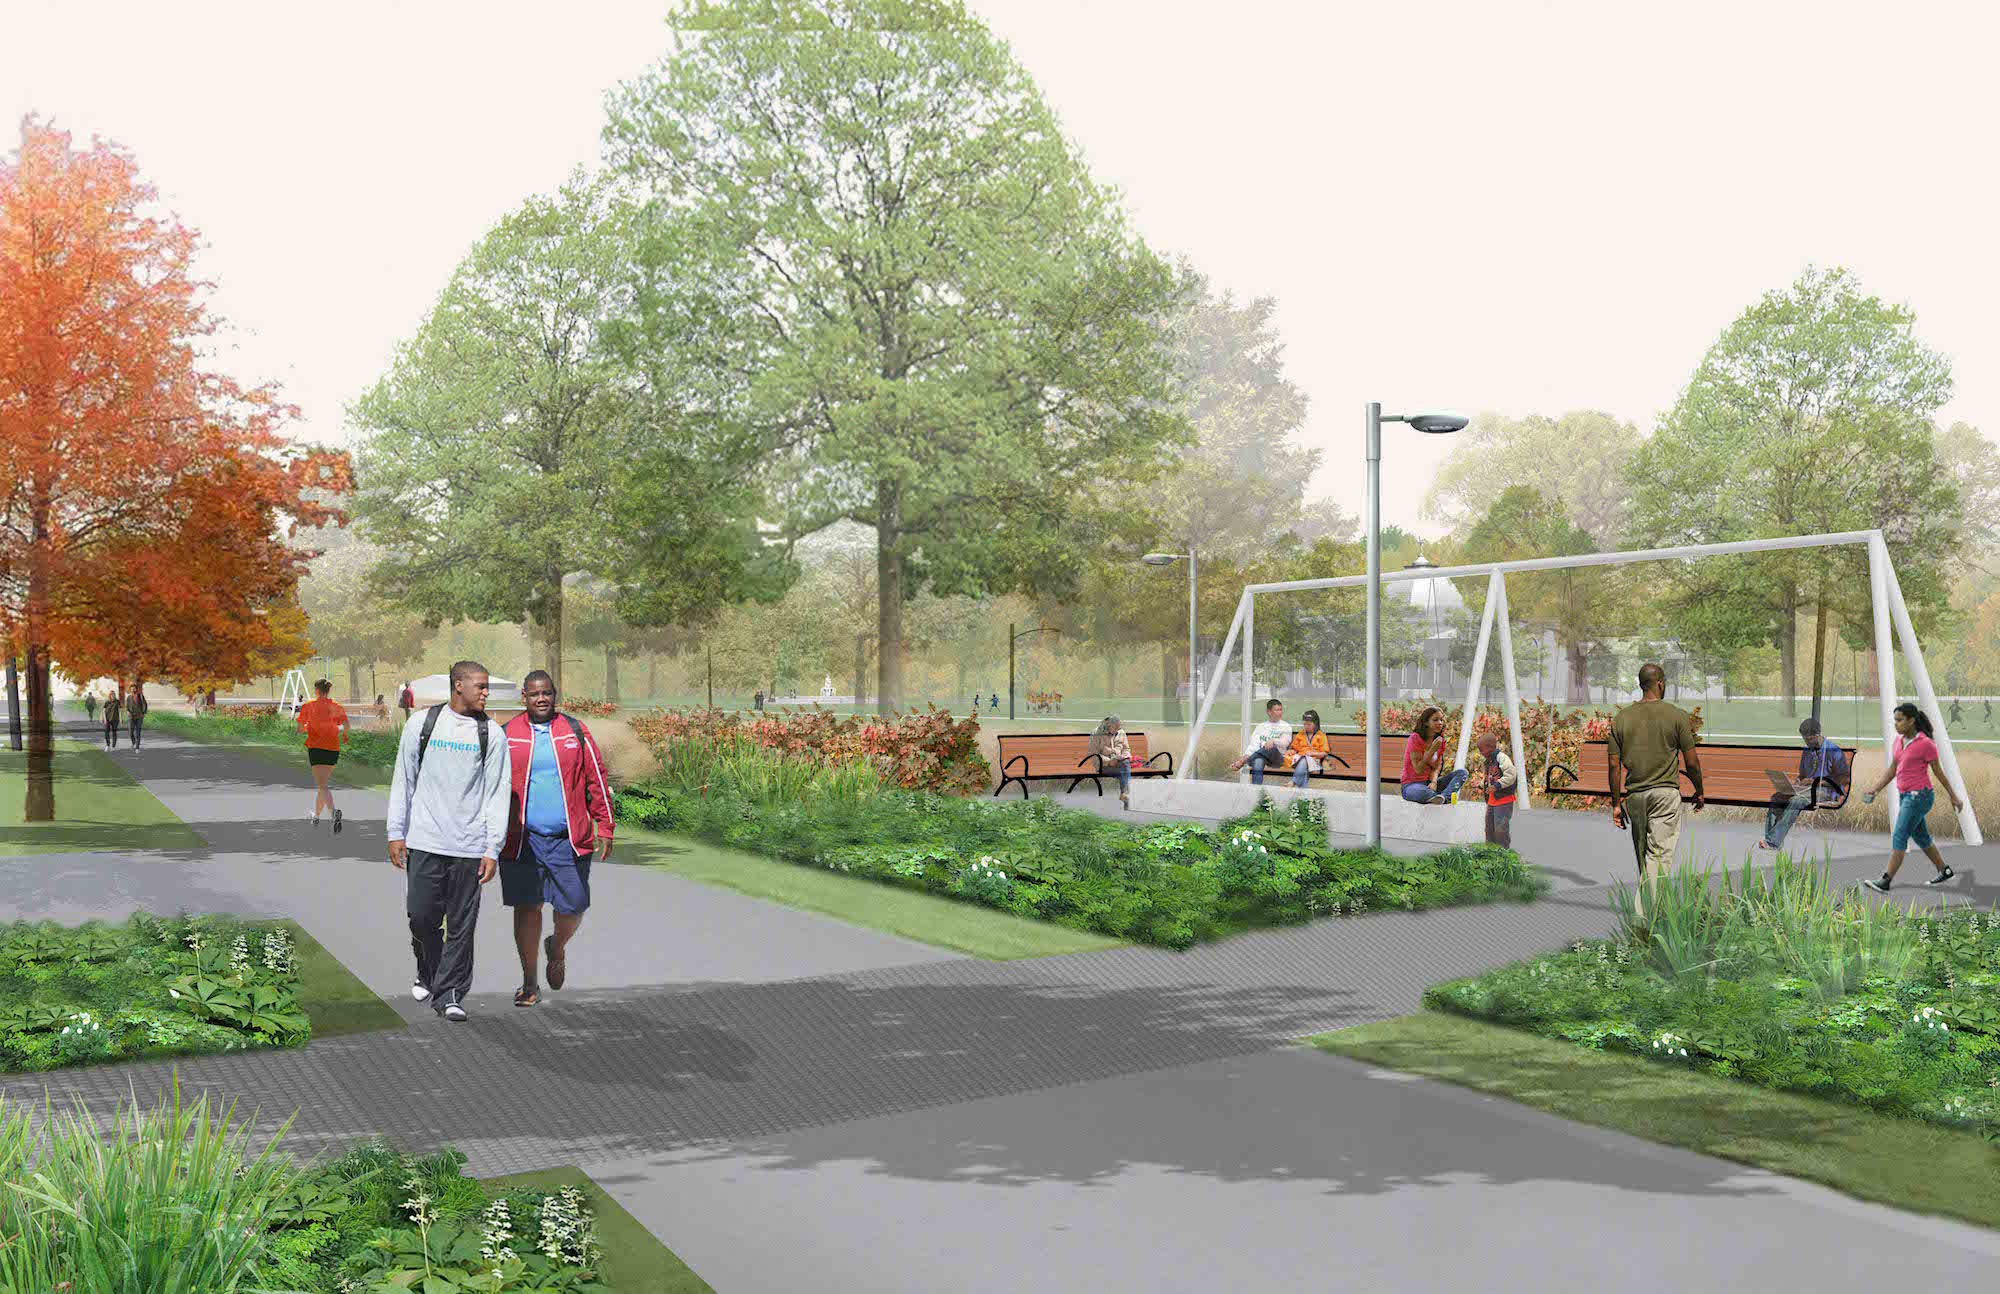 A rendering of Parkside Neighborhood Edge with swings, benches, and native plants.